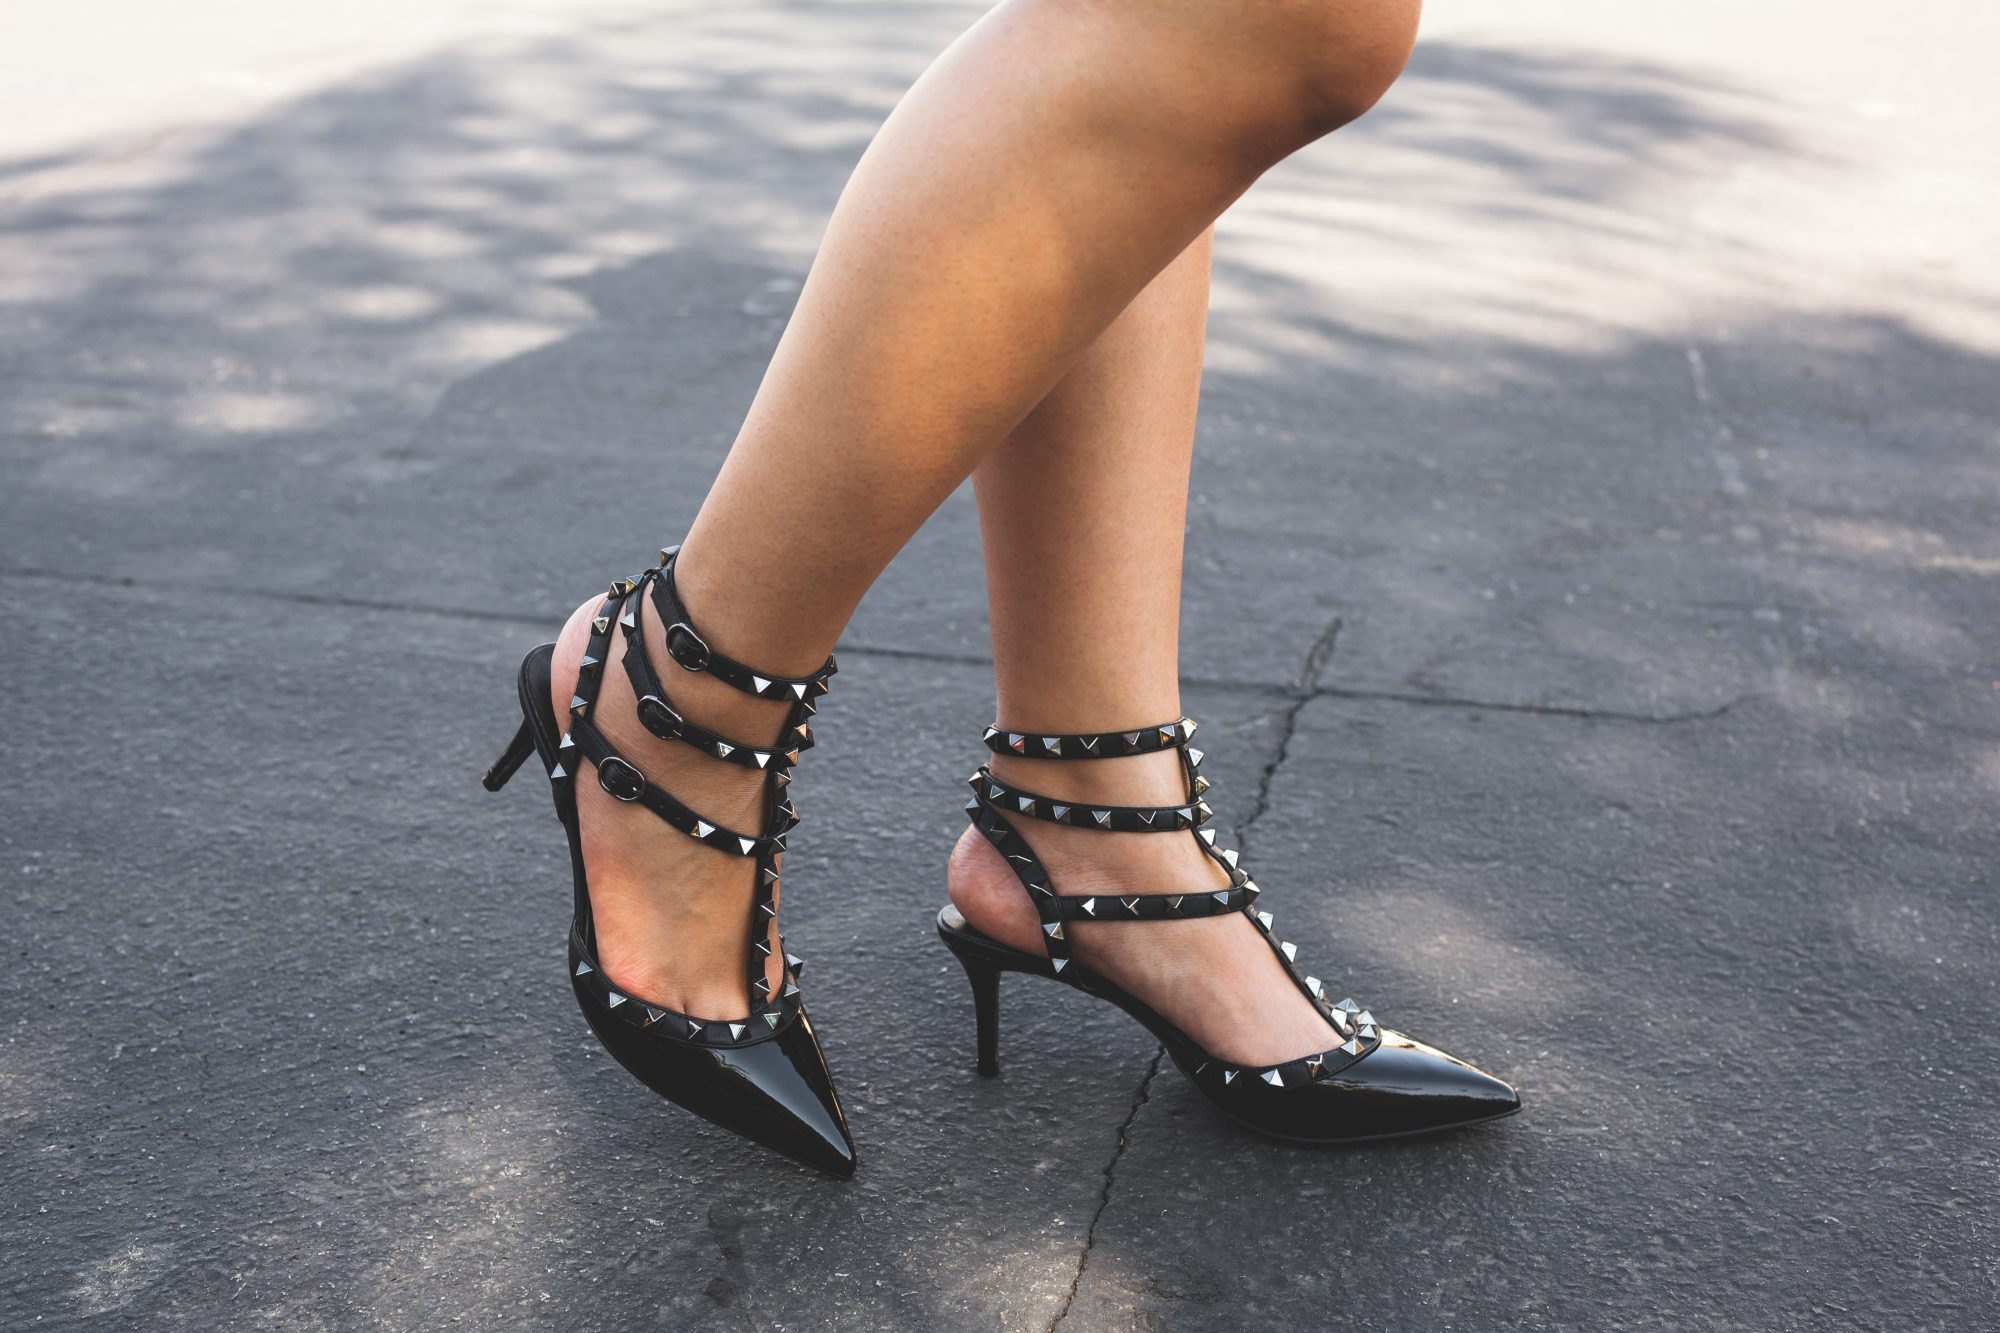 Valentino's Rockstud kitten heel is a gorgeous heel priced at $995. Can't afford it? Here's perfect genuine leather and lambskin dupe for only $115! - www.theballeronabudget.com